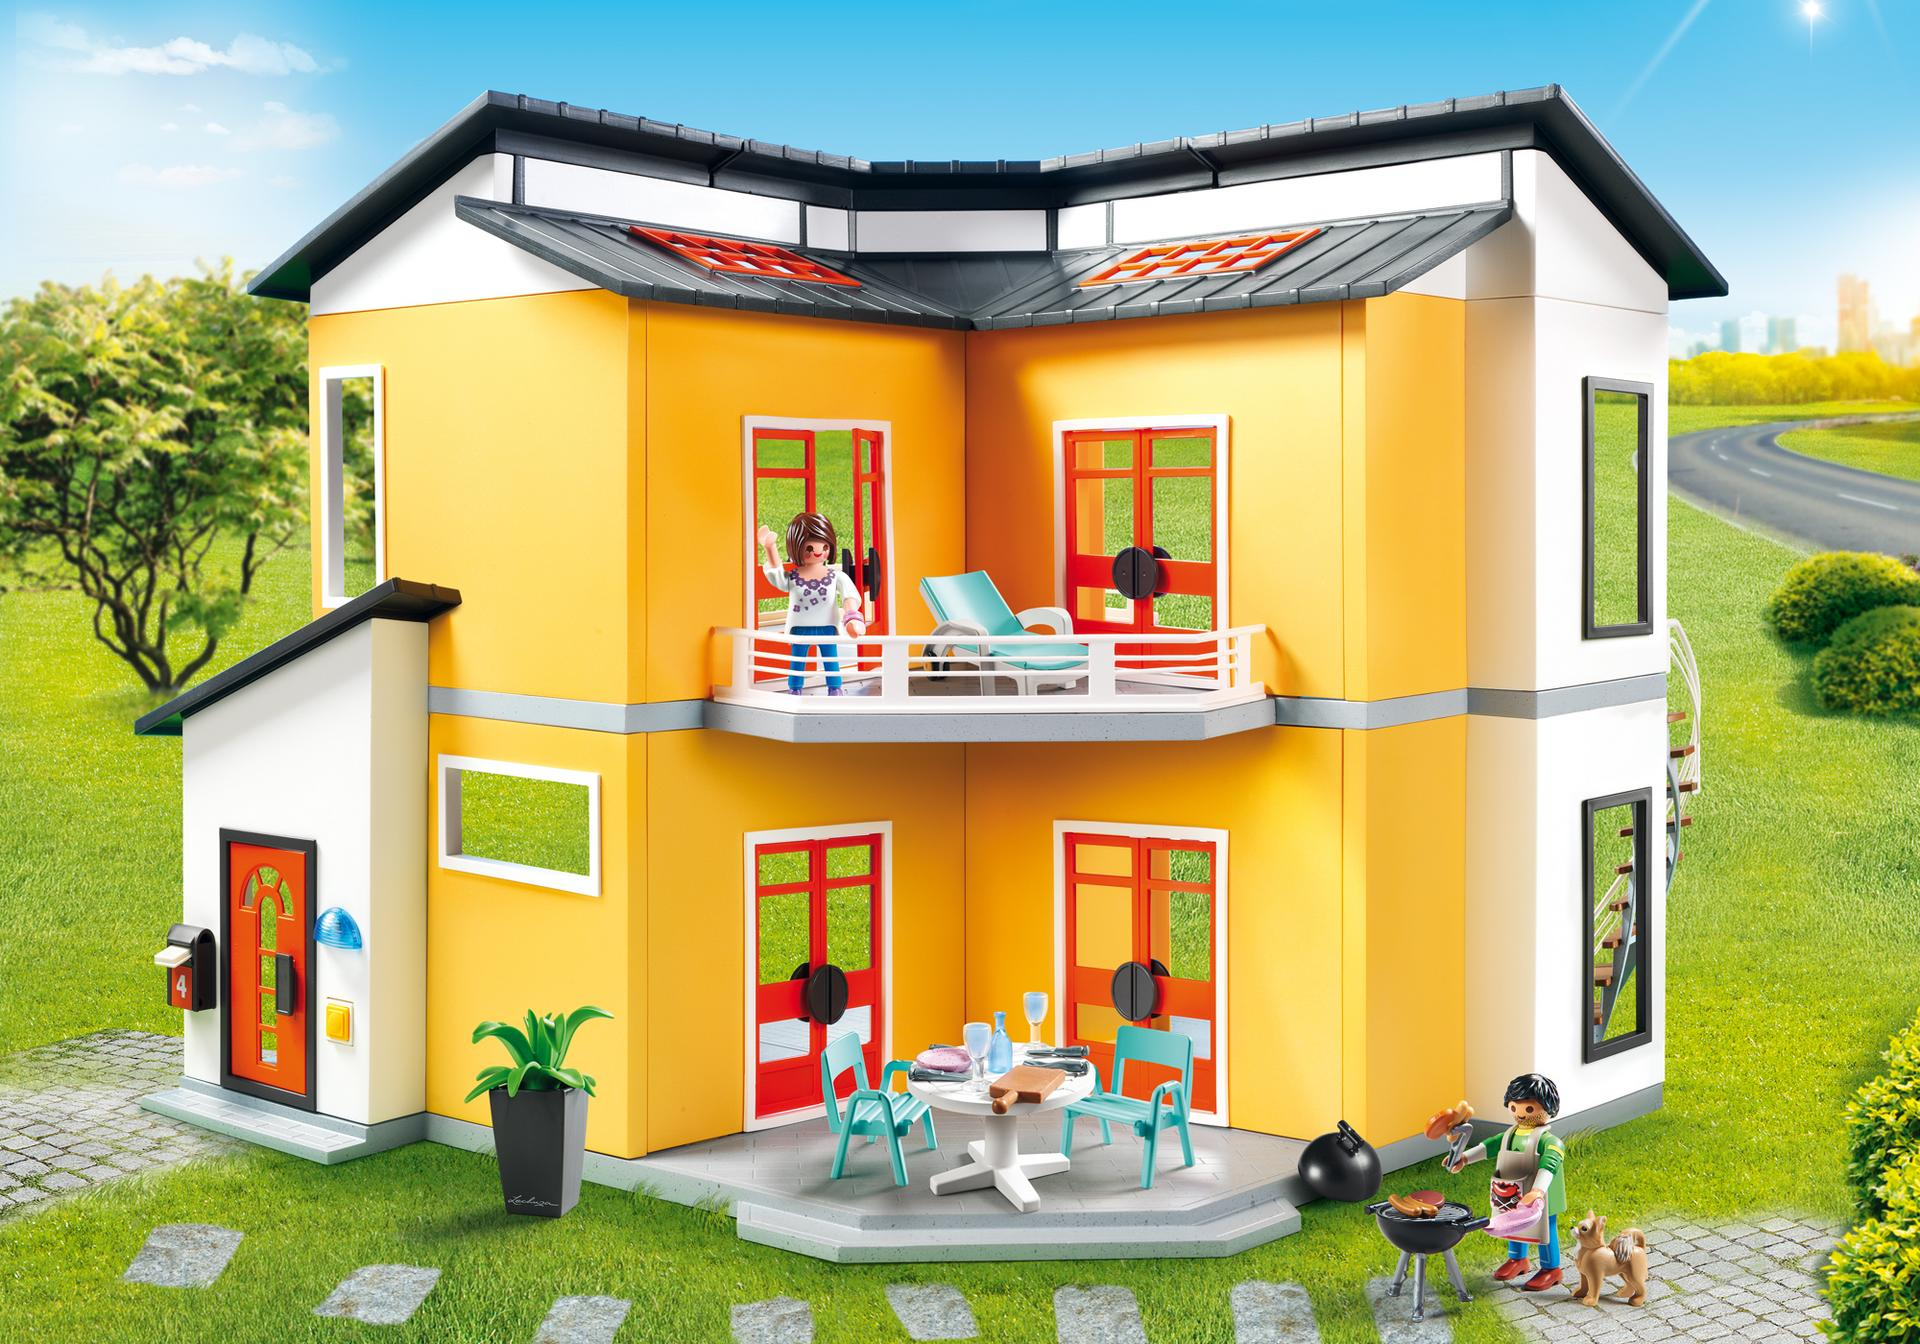 playmobil luxusvilla k che gehobene k che m nchen ikea torhamn polster sitzbank applad. Black Bedroom Furniture Sets. Home Design Ideas